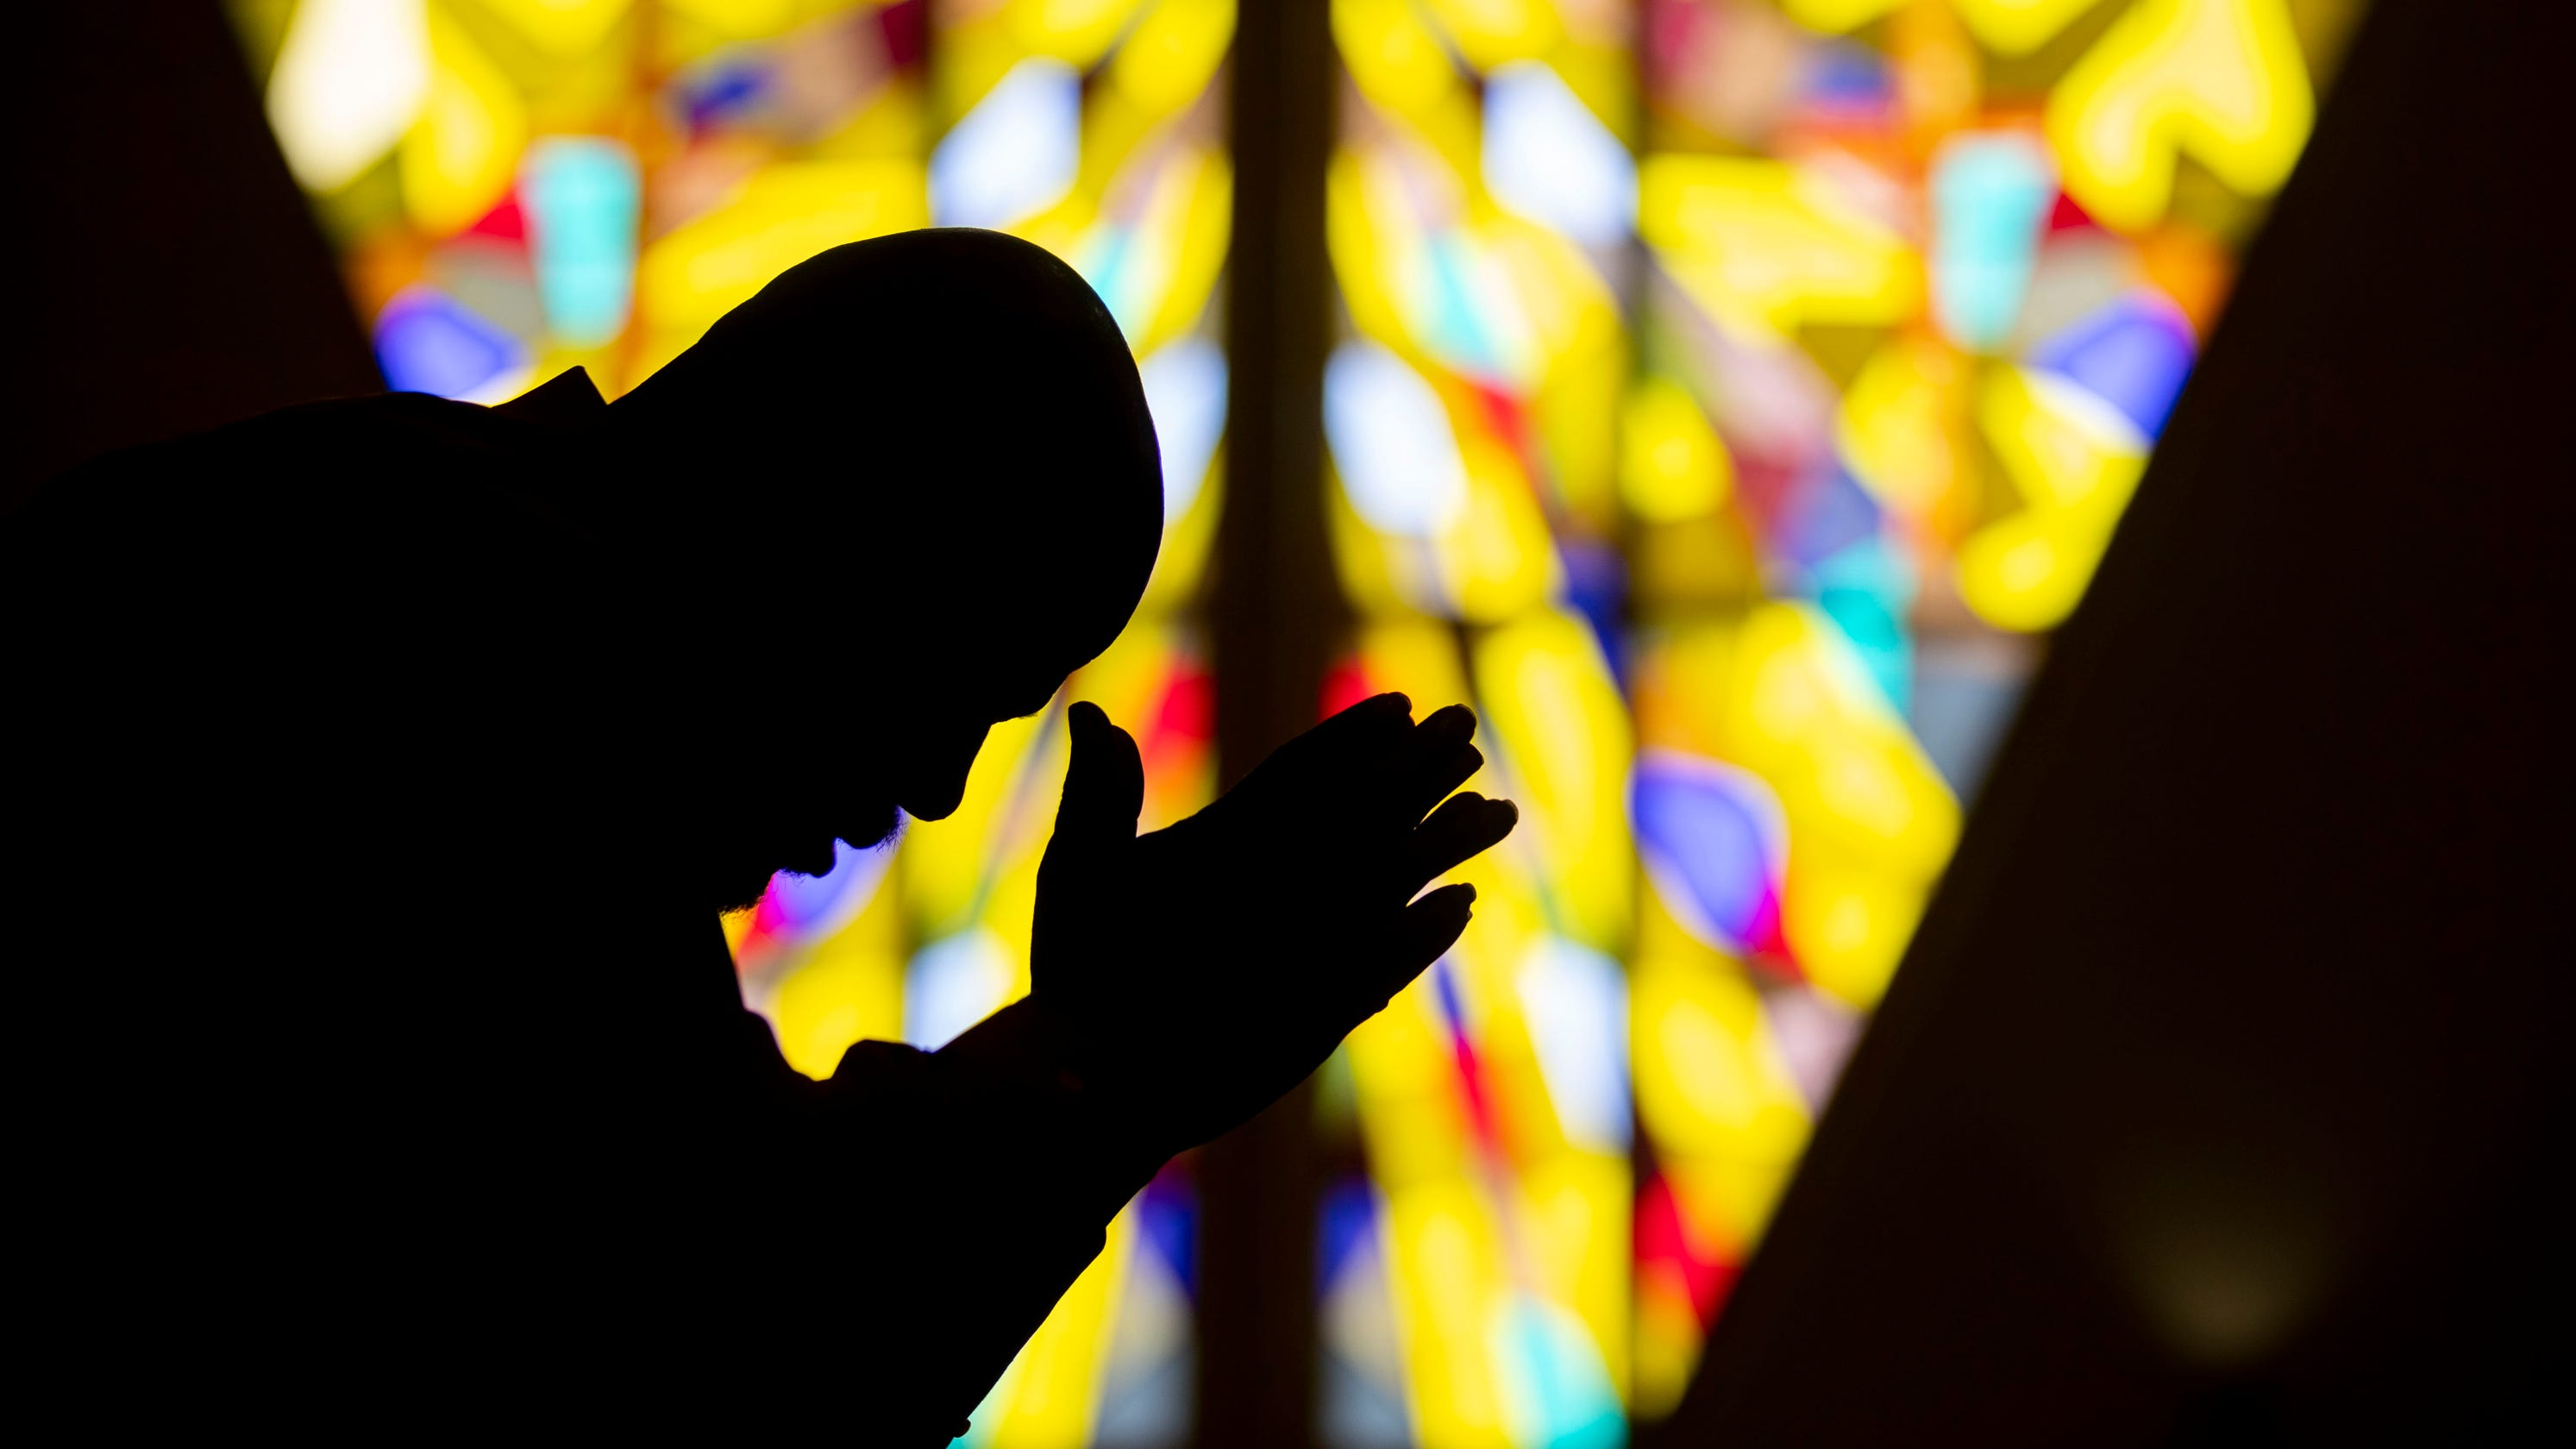 God help us: We're losing our religion and filling the void with politics